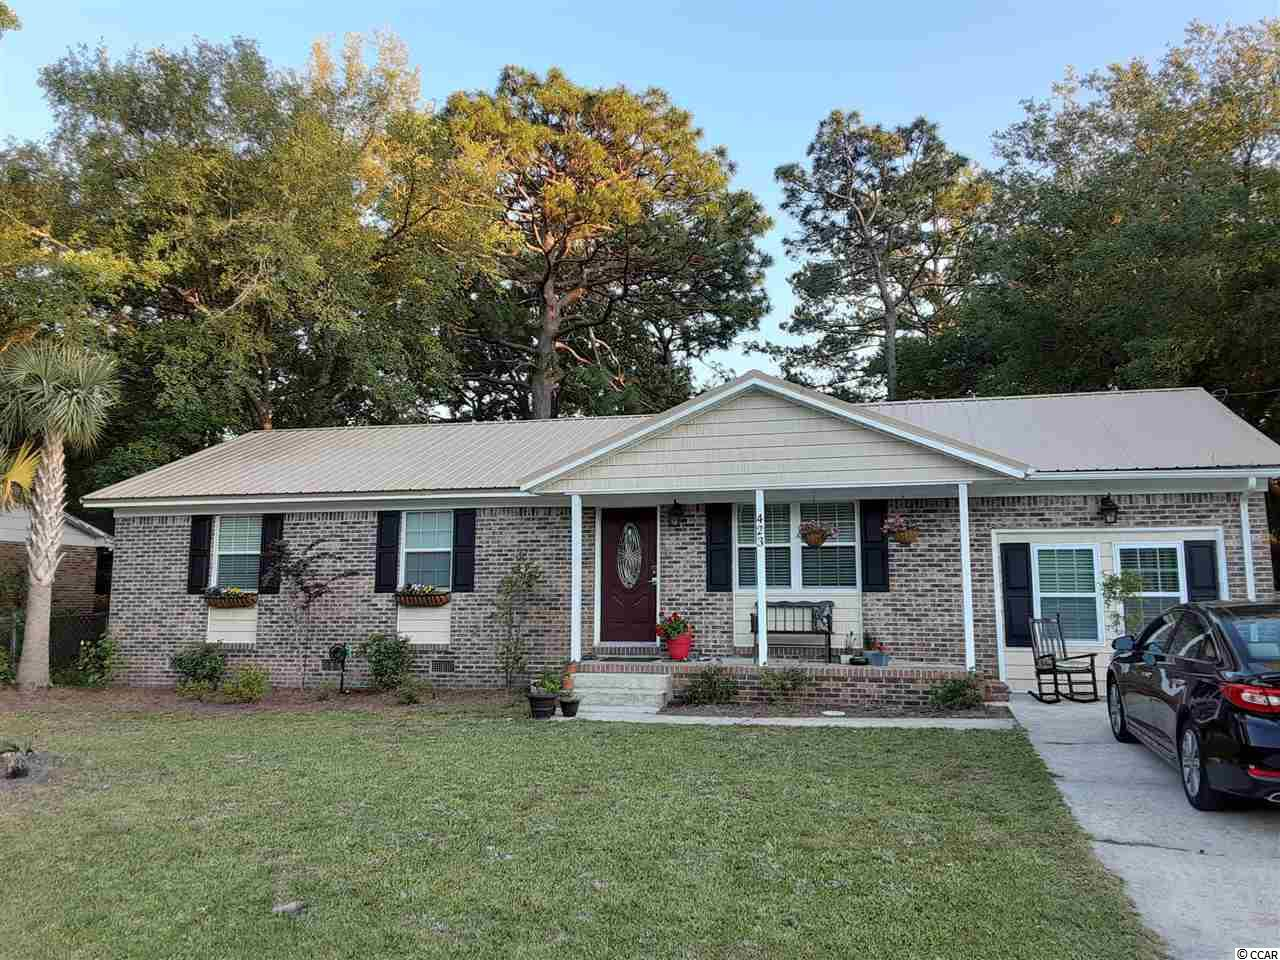 Great location, great price! Maryville is just 5 minutes from downtown Georgetown restaurants, historic district, boat ramps, marinas, 45 minutes to Charleston and all it has to offer. Only 20 minutes to area beaches! This quiet neighborhood is a good mix of families, retirees and first time home owners. One of the four bedrooms has it's own entrance and bathroom along with a wet bar area with room for small refrigerator and could easily be rented out for extra income, Air B&B or serve as a mother-in-law suite. Don't wait, this one won't last long.